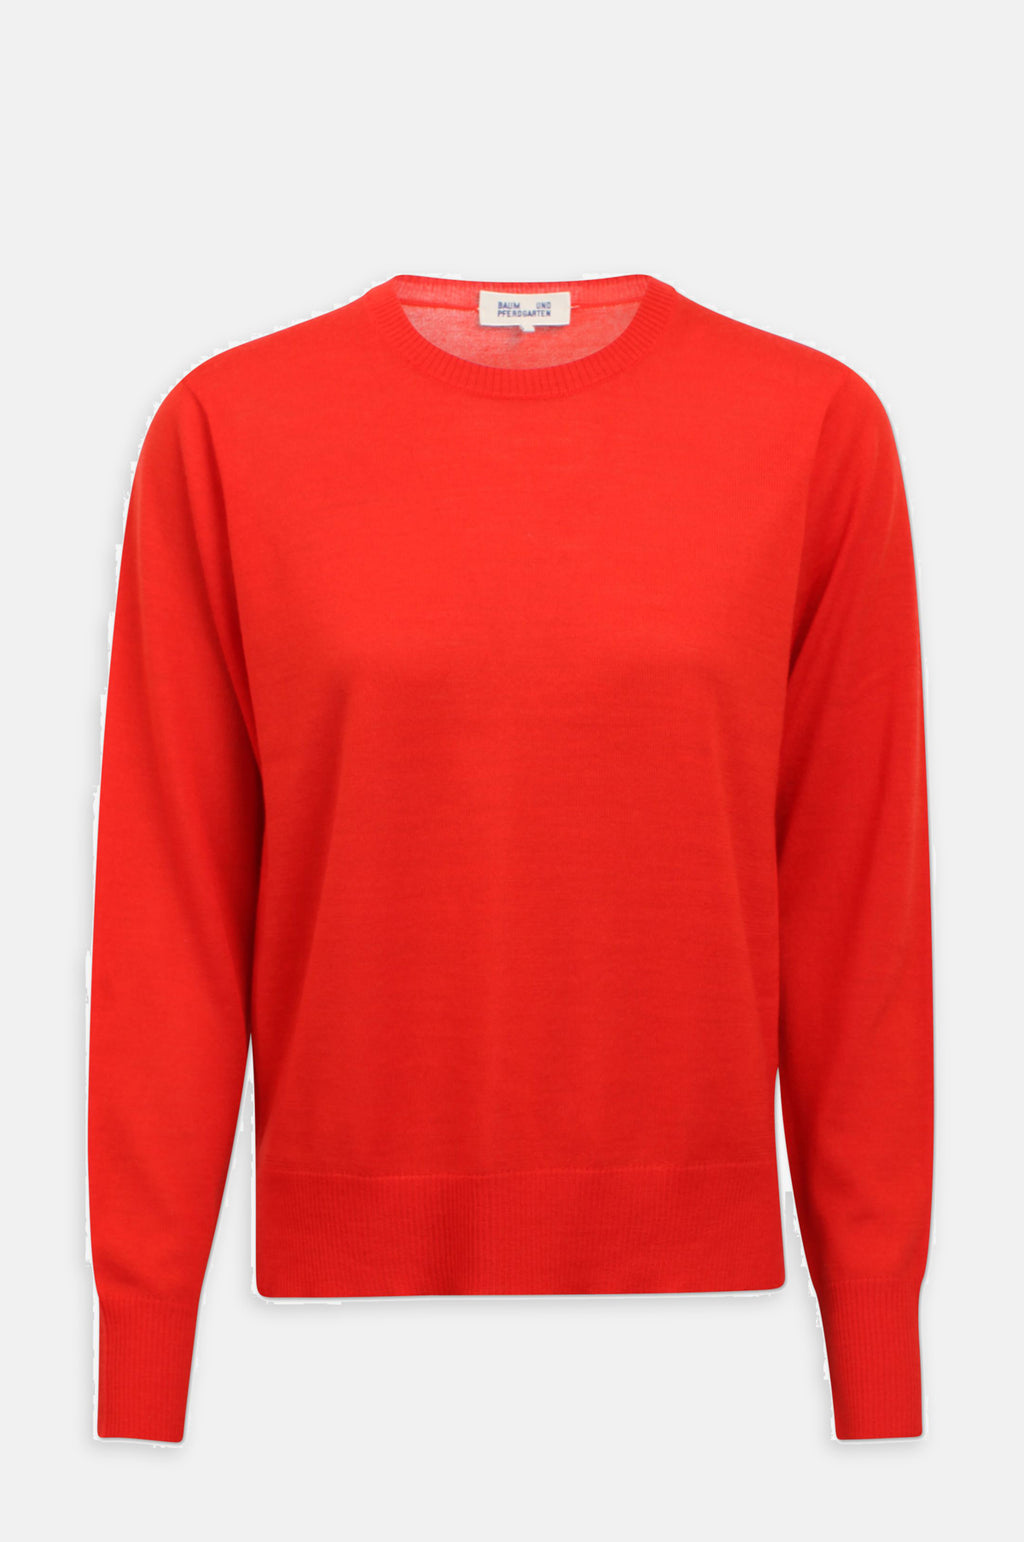 Caelyn Knitted Jumper in Orange.com